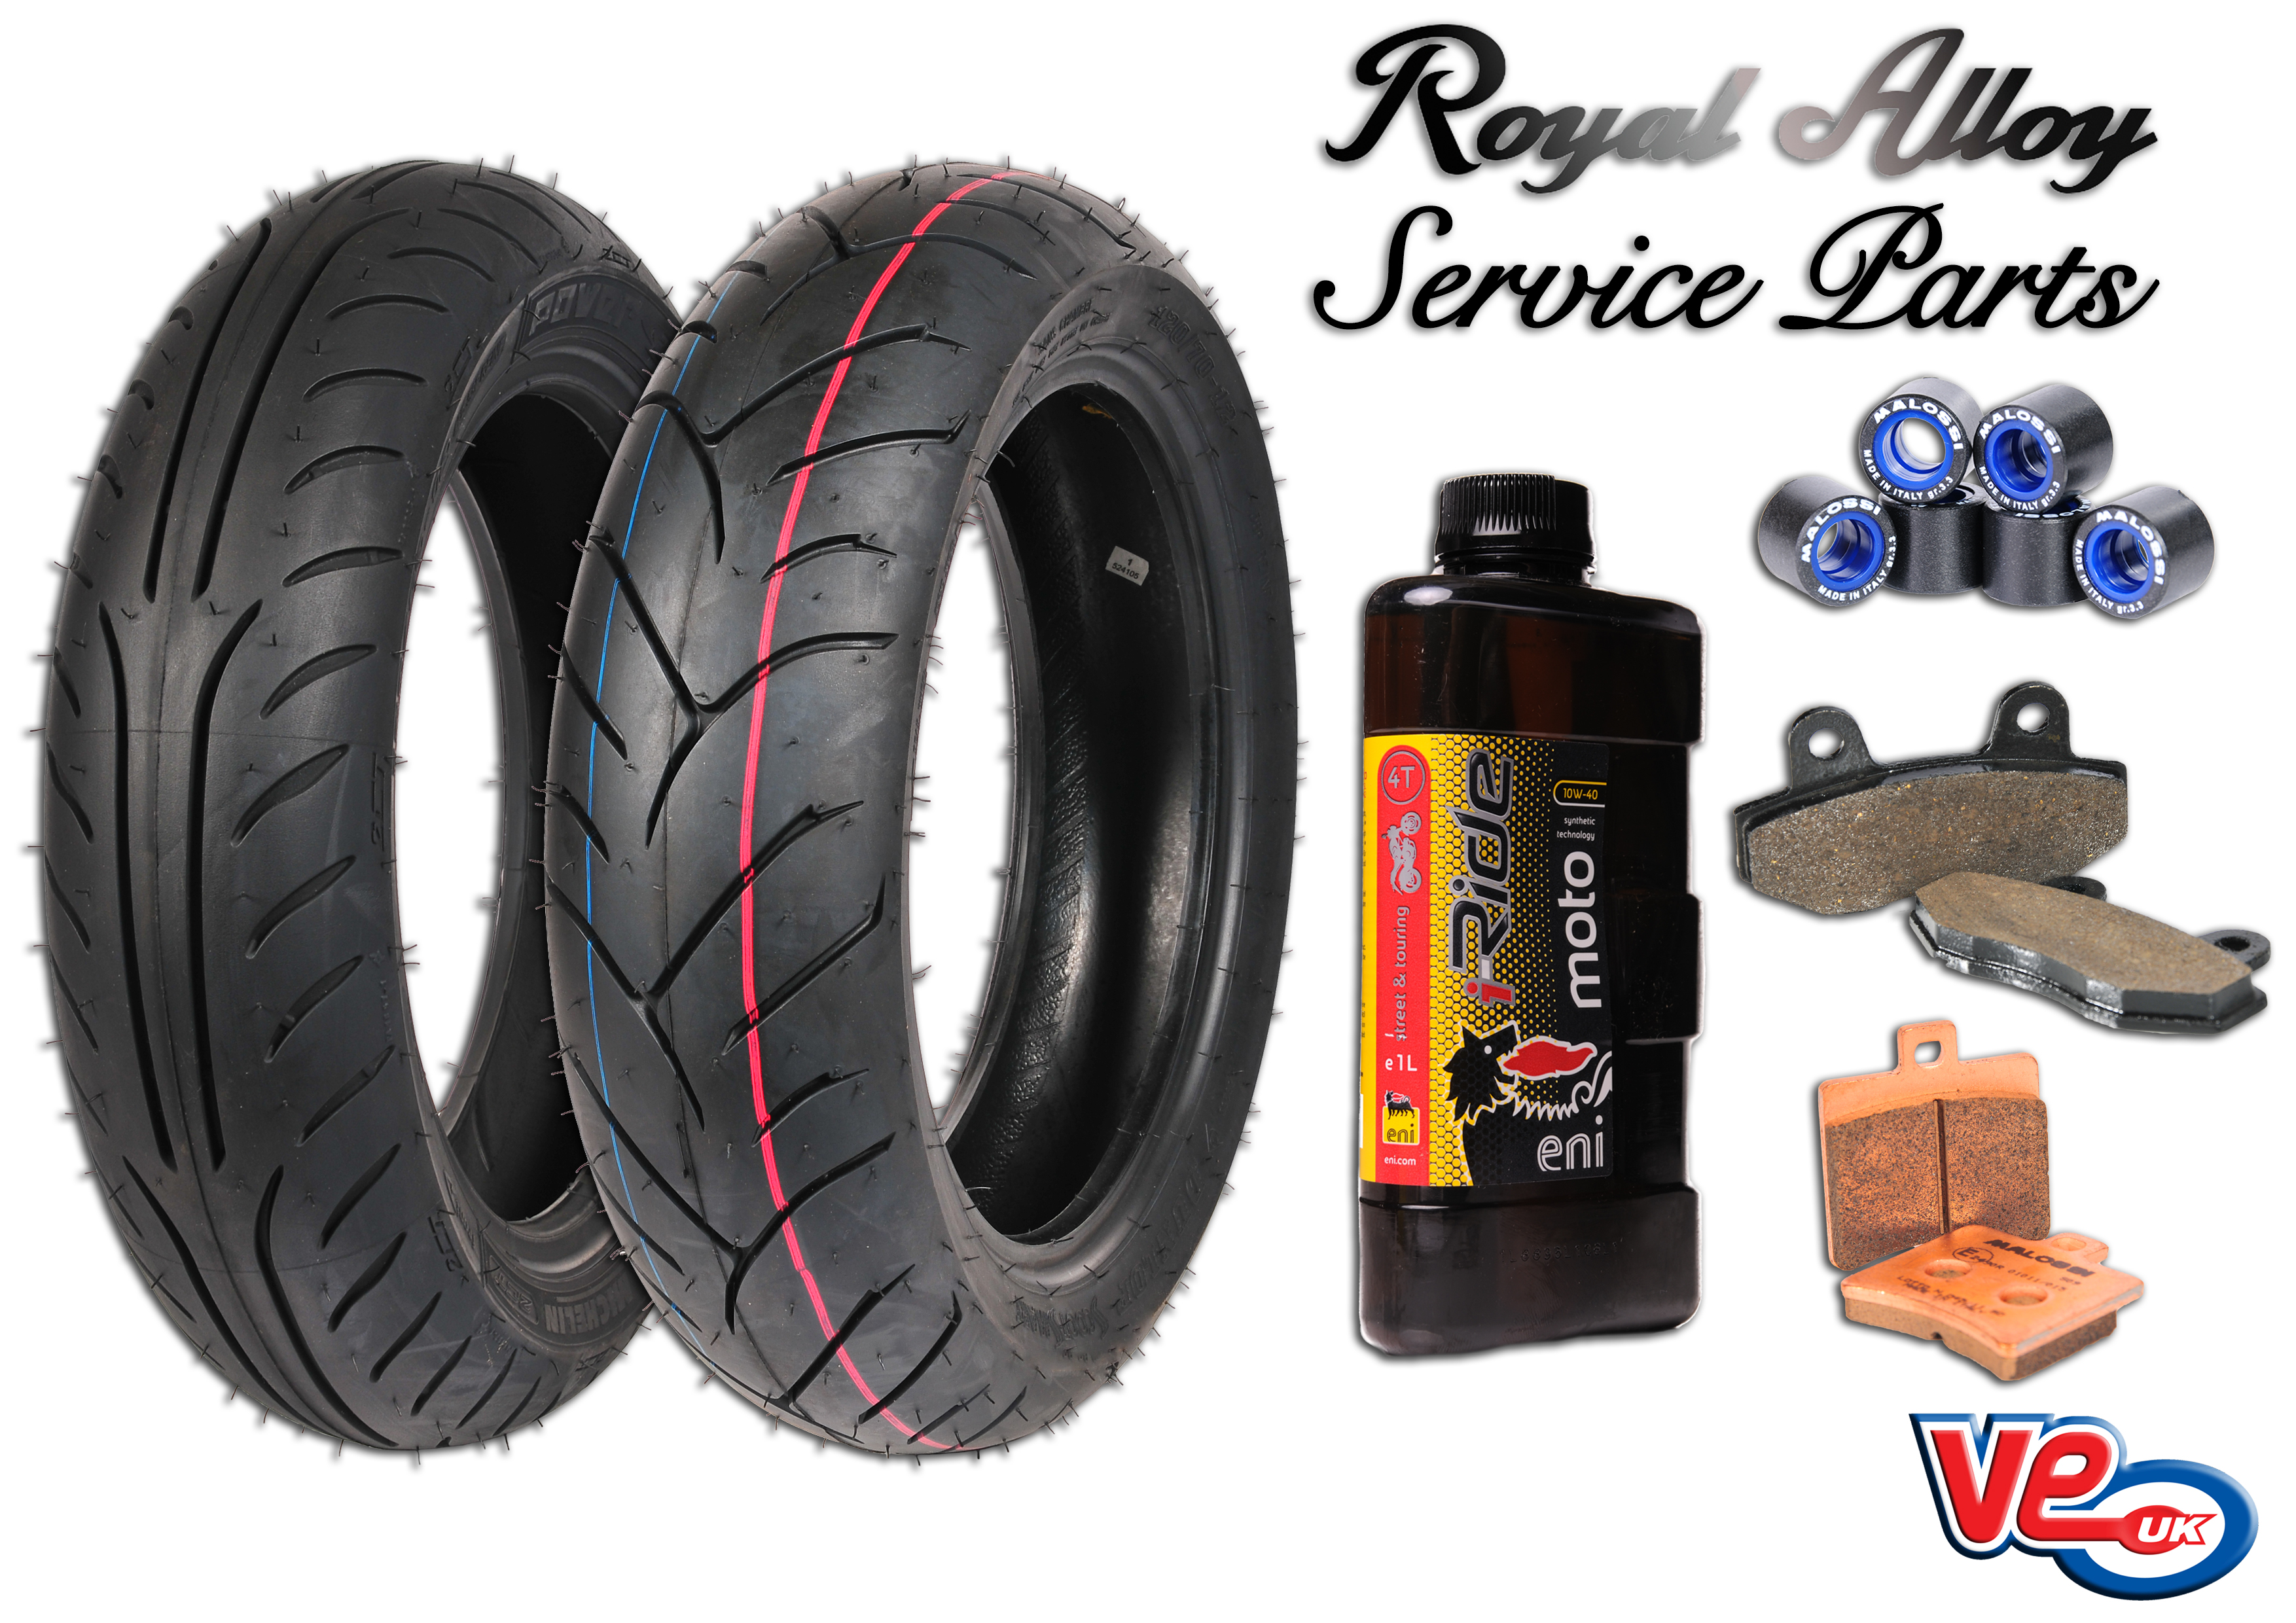 Royal Alloy 125 Service Parts